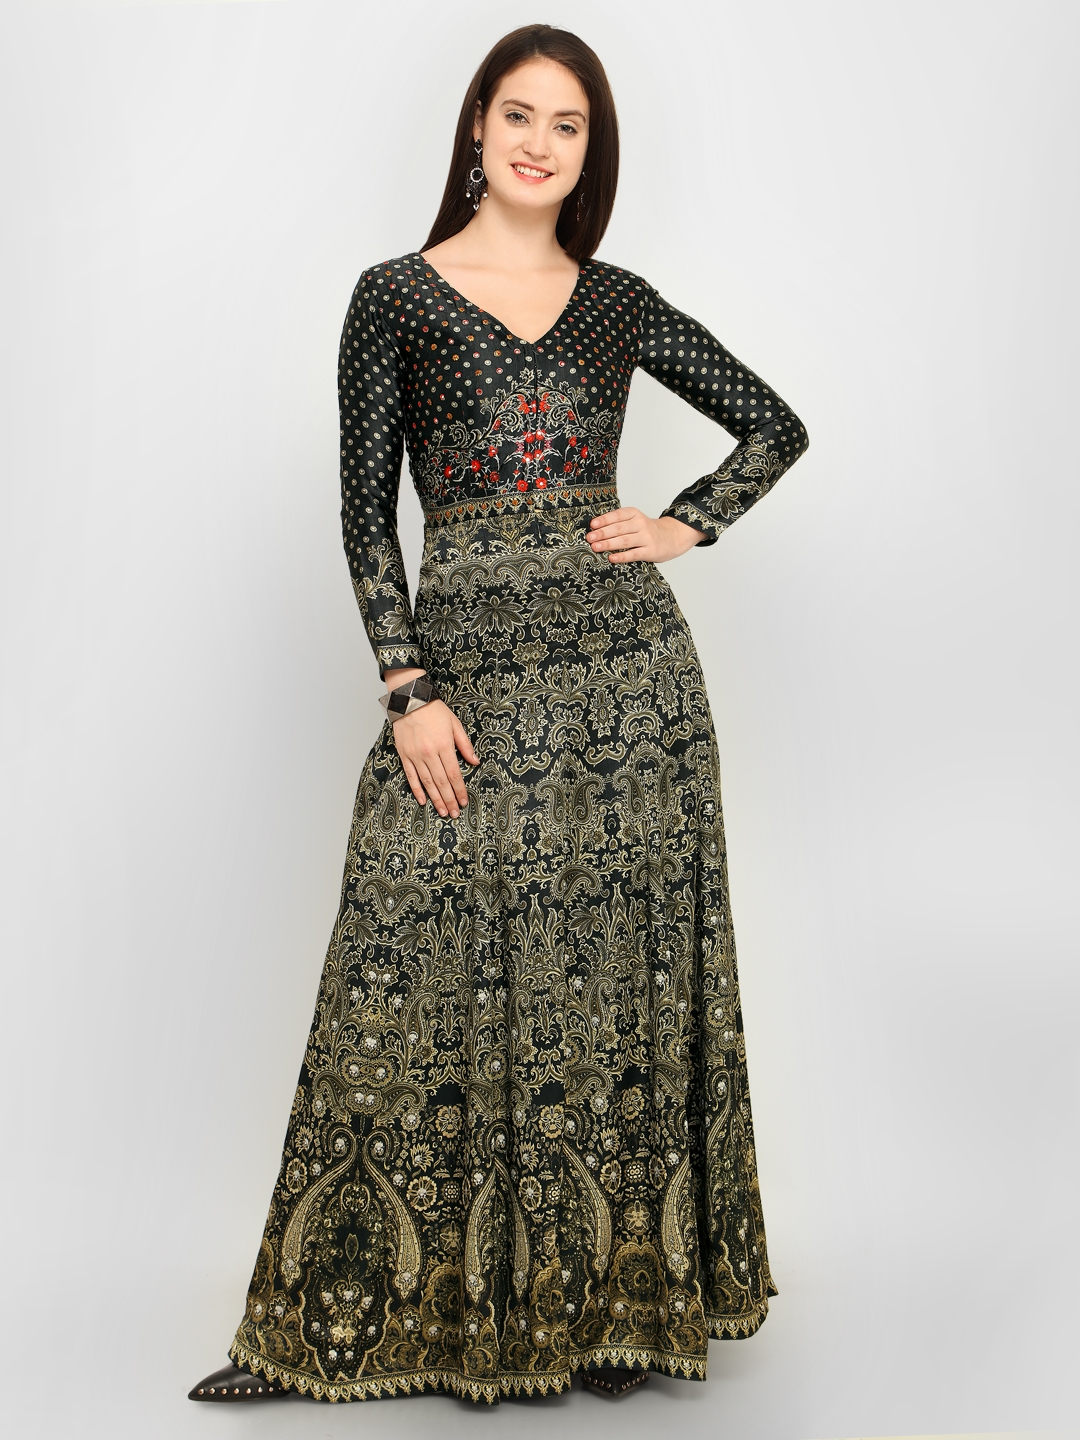 ec3deaf57482d5 Stylee LIFESTYLE Black & Beige Satin Semi-Stitched Gown Dress Material